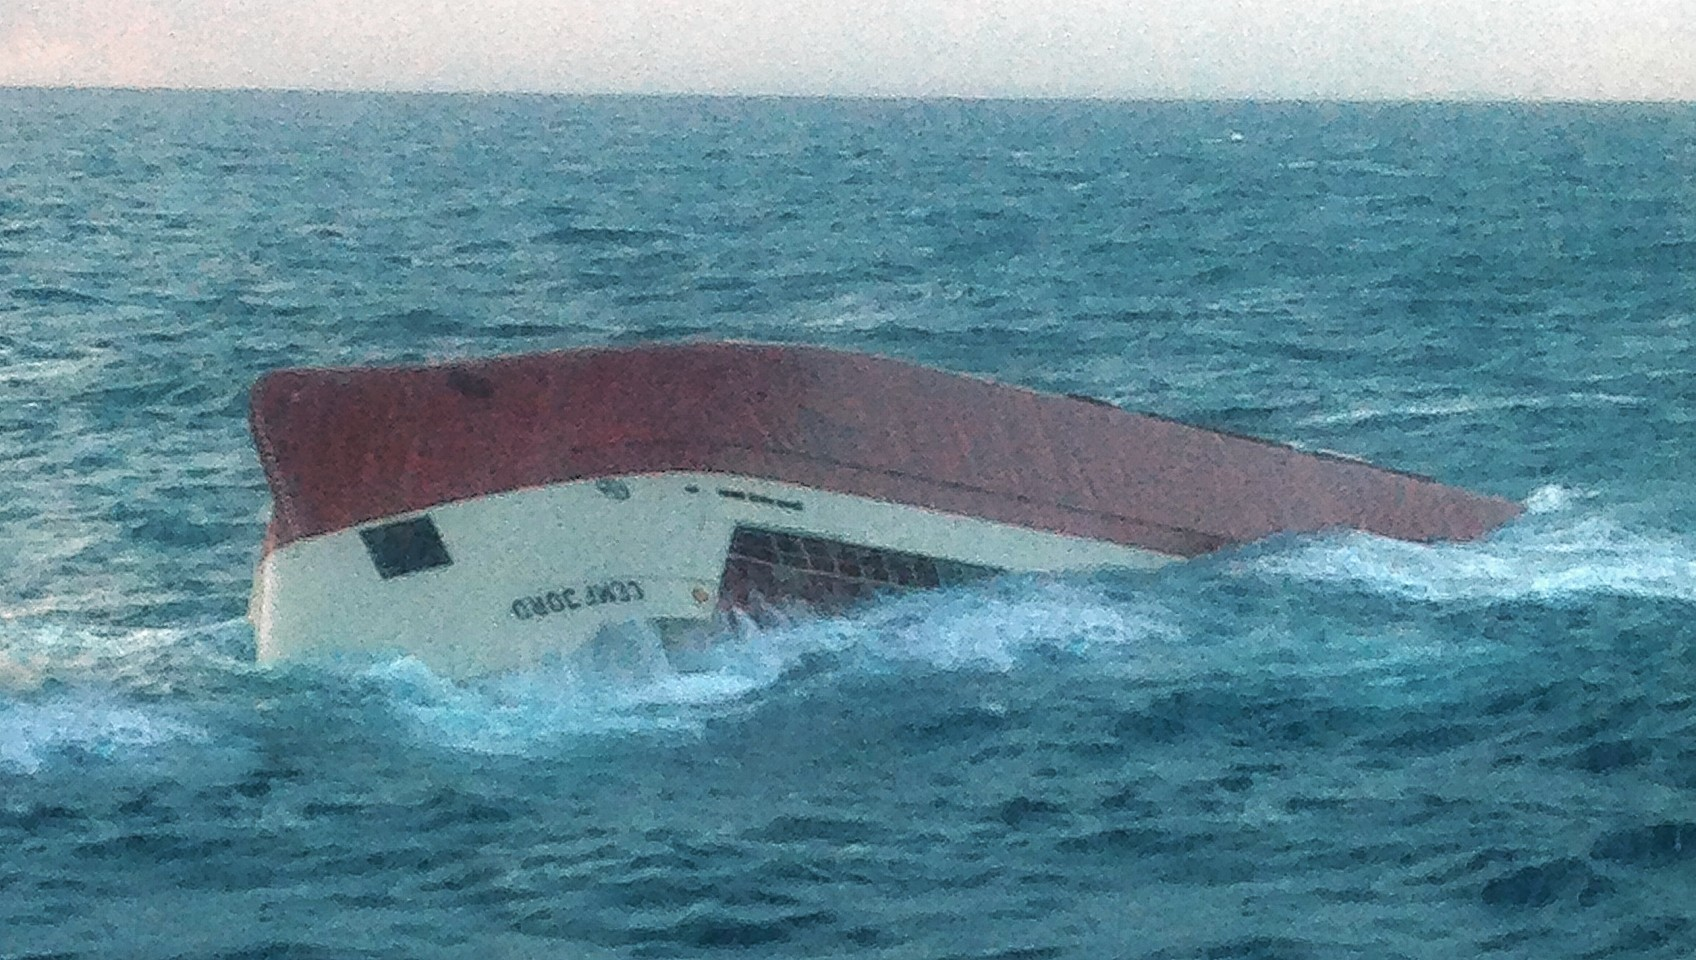 The eight crew are all presumed dead and may still be on board the boat